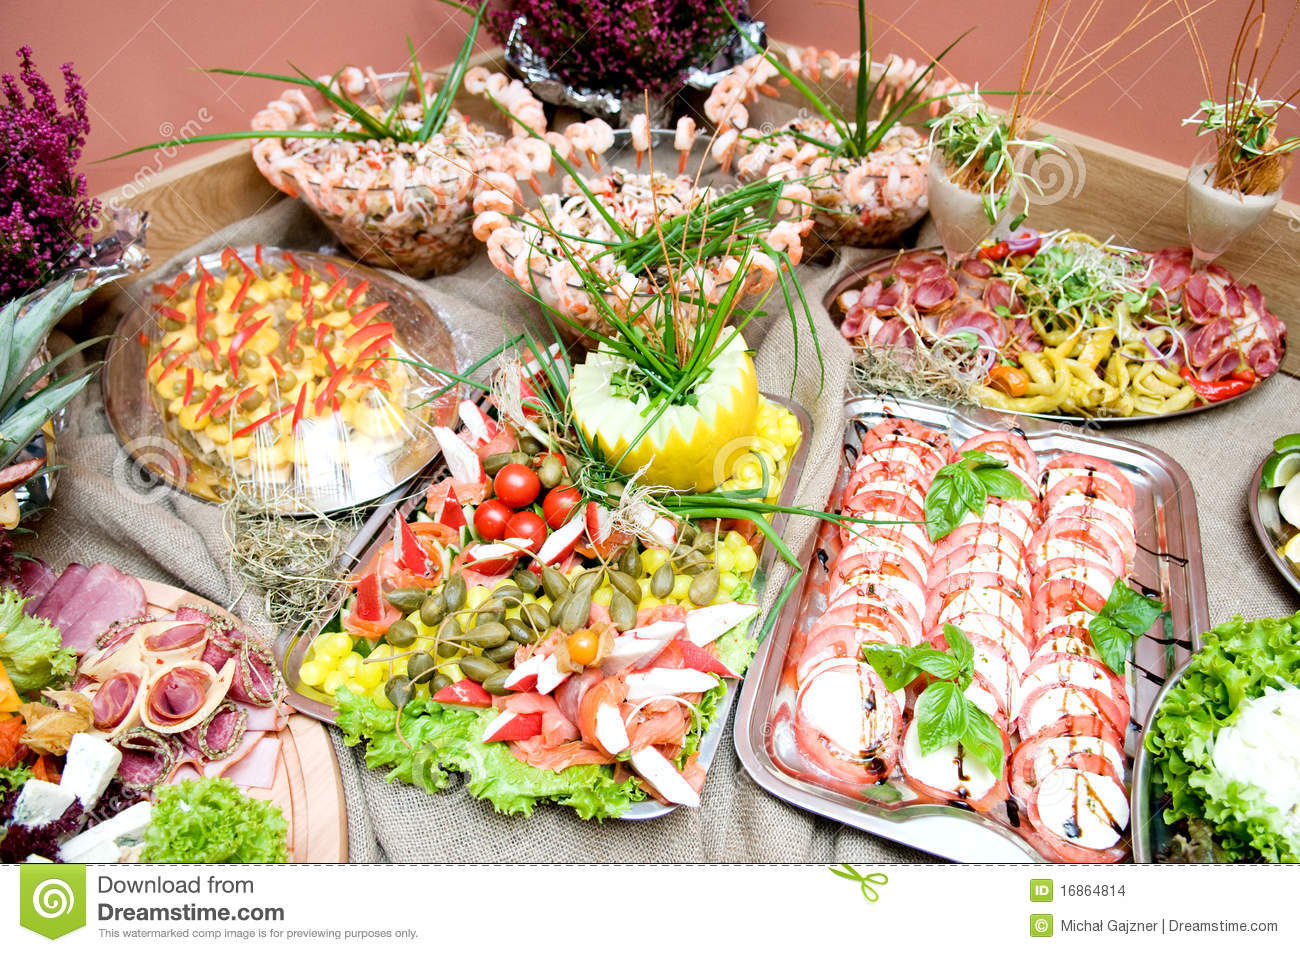 Catering Food Stock Images - Image: 16864814